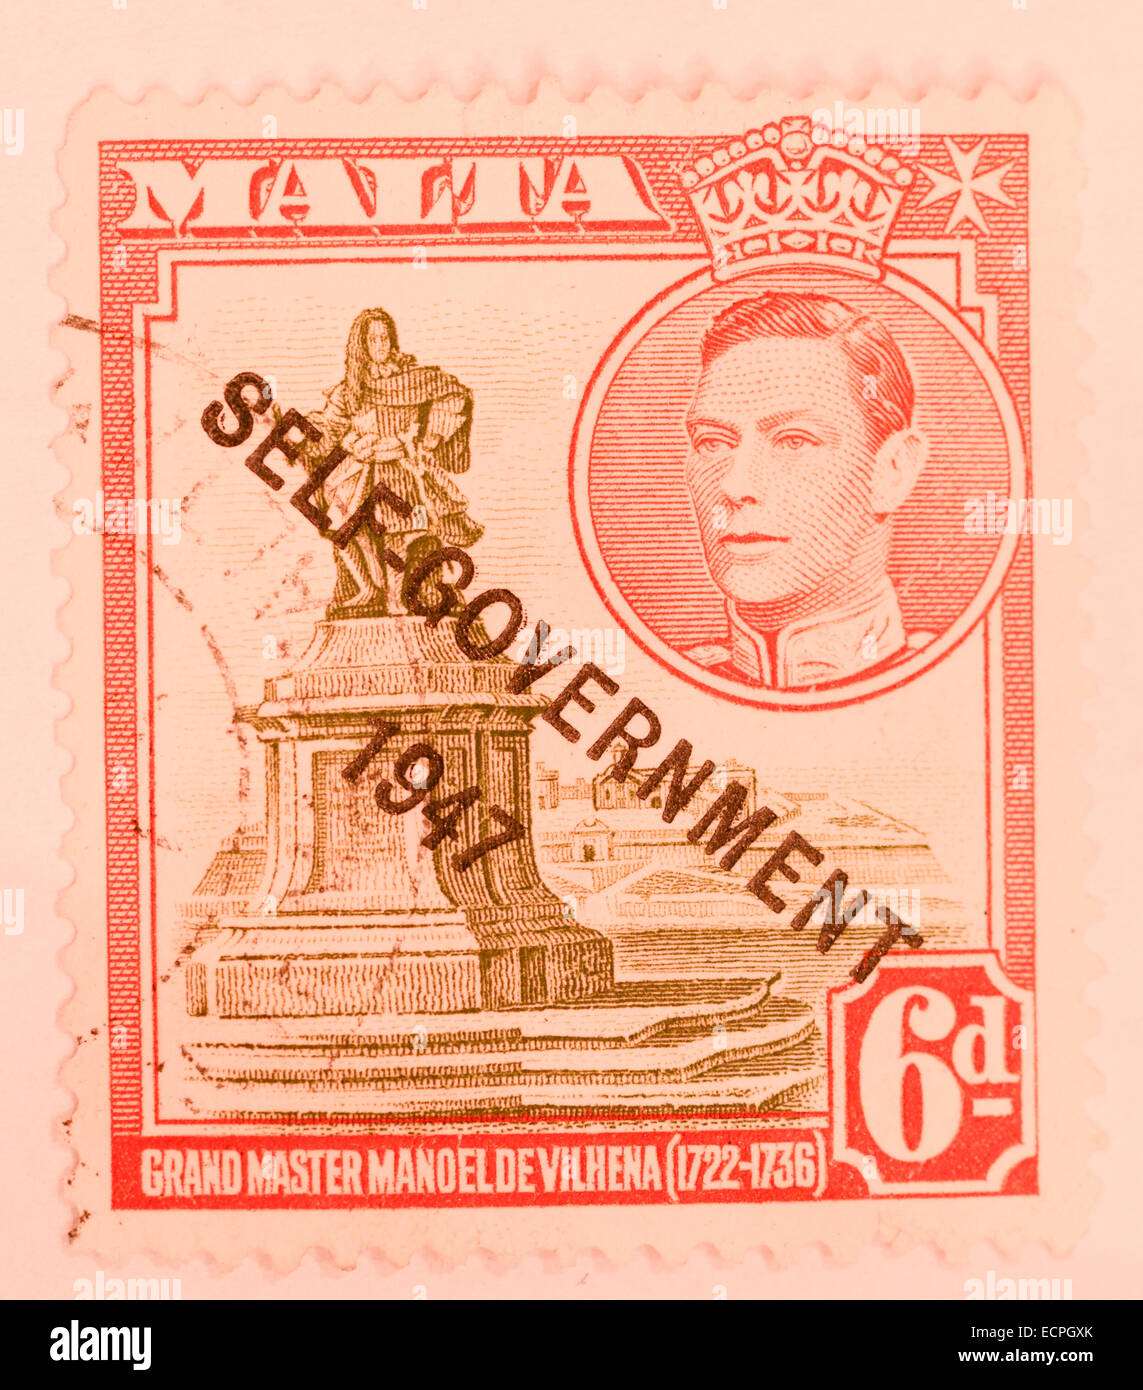 old british stamp from malta - Stock Image